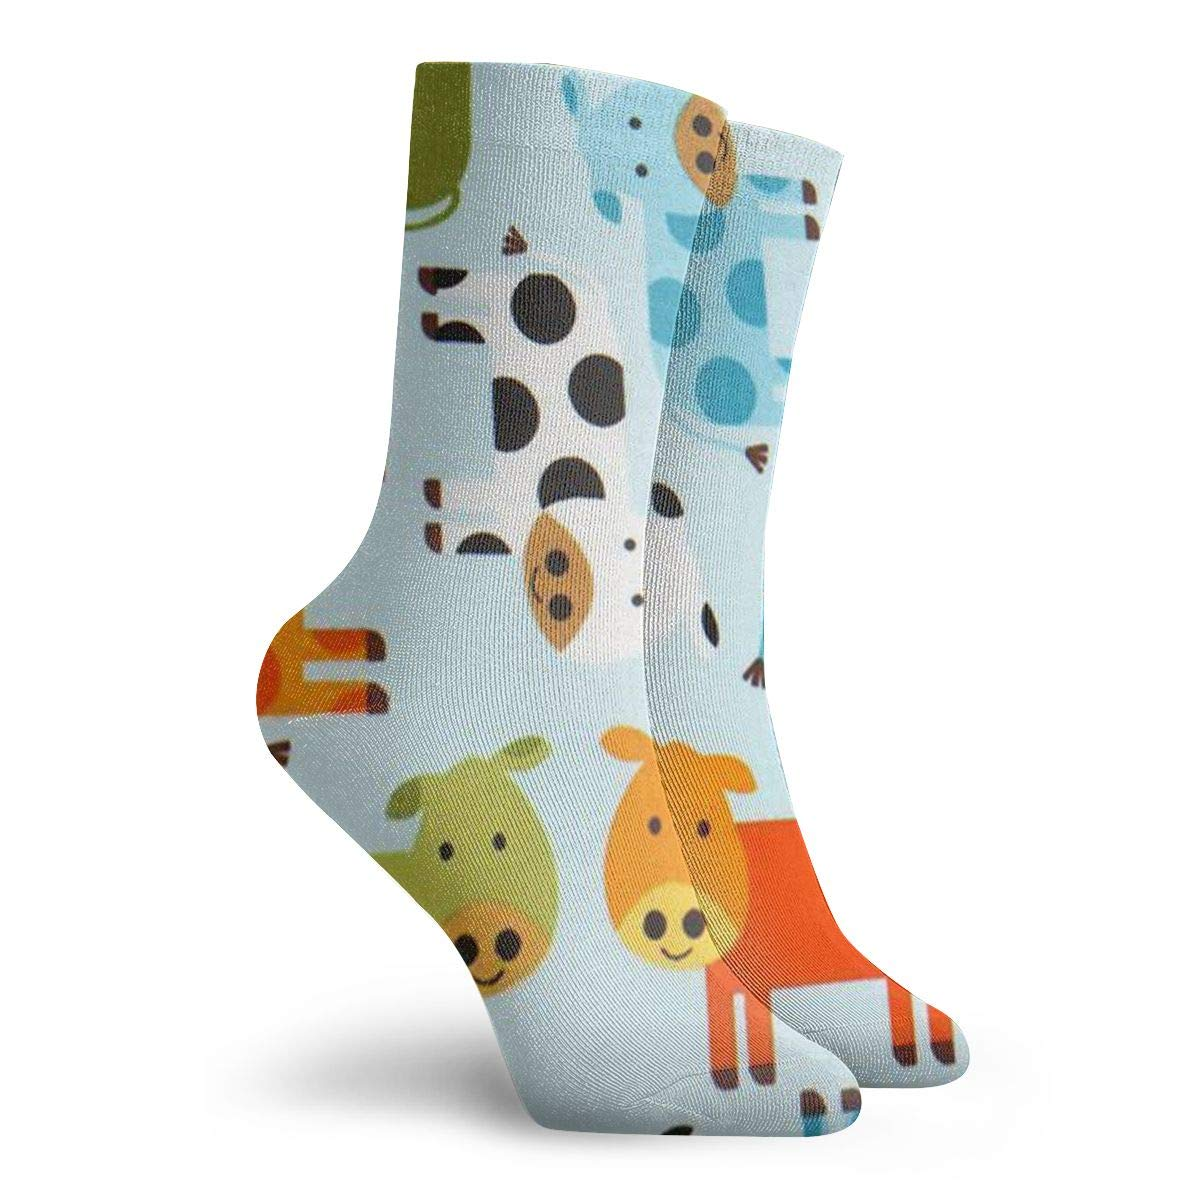 Colorful Cow Pattern Unisex Funny Casual Crew Socks Athletic Socks For Boys Girls Kids Teenagers